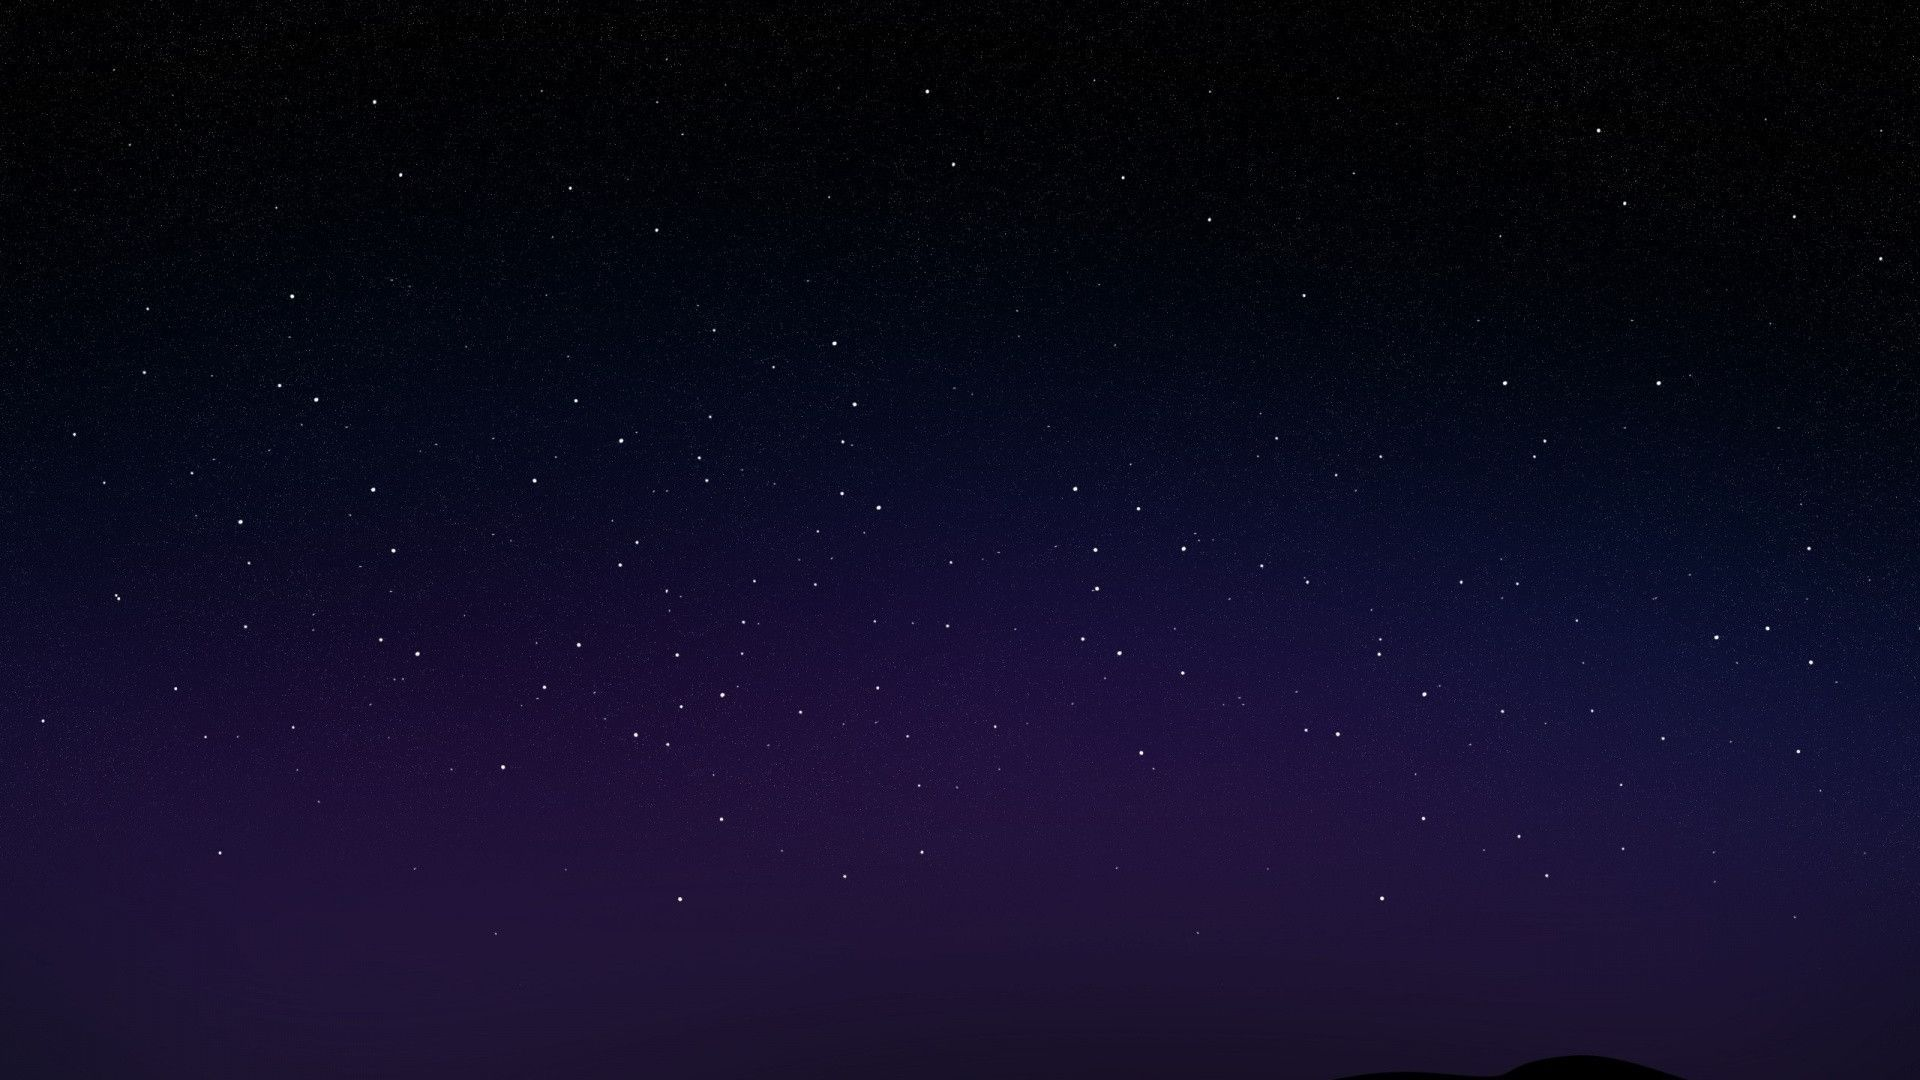 1920x1080 Starry Night Sky desktop PC and Mac wallpaper